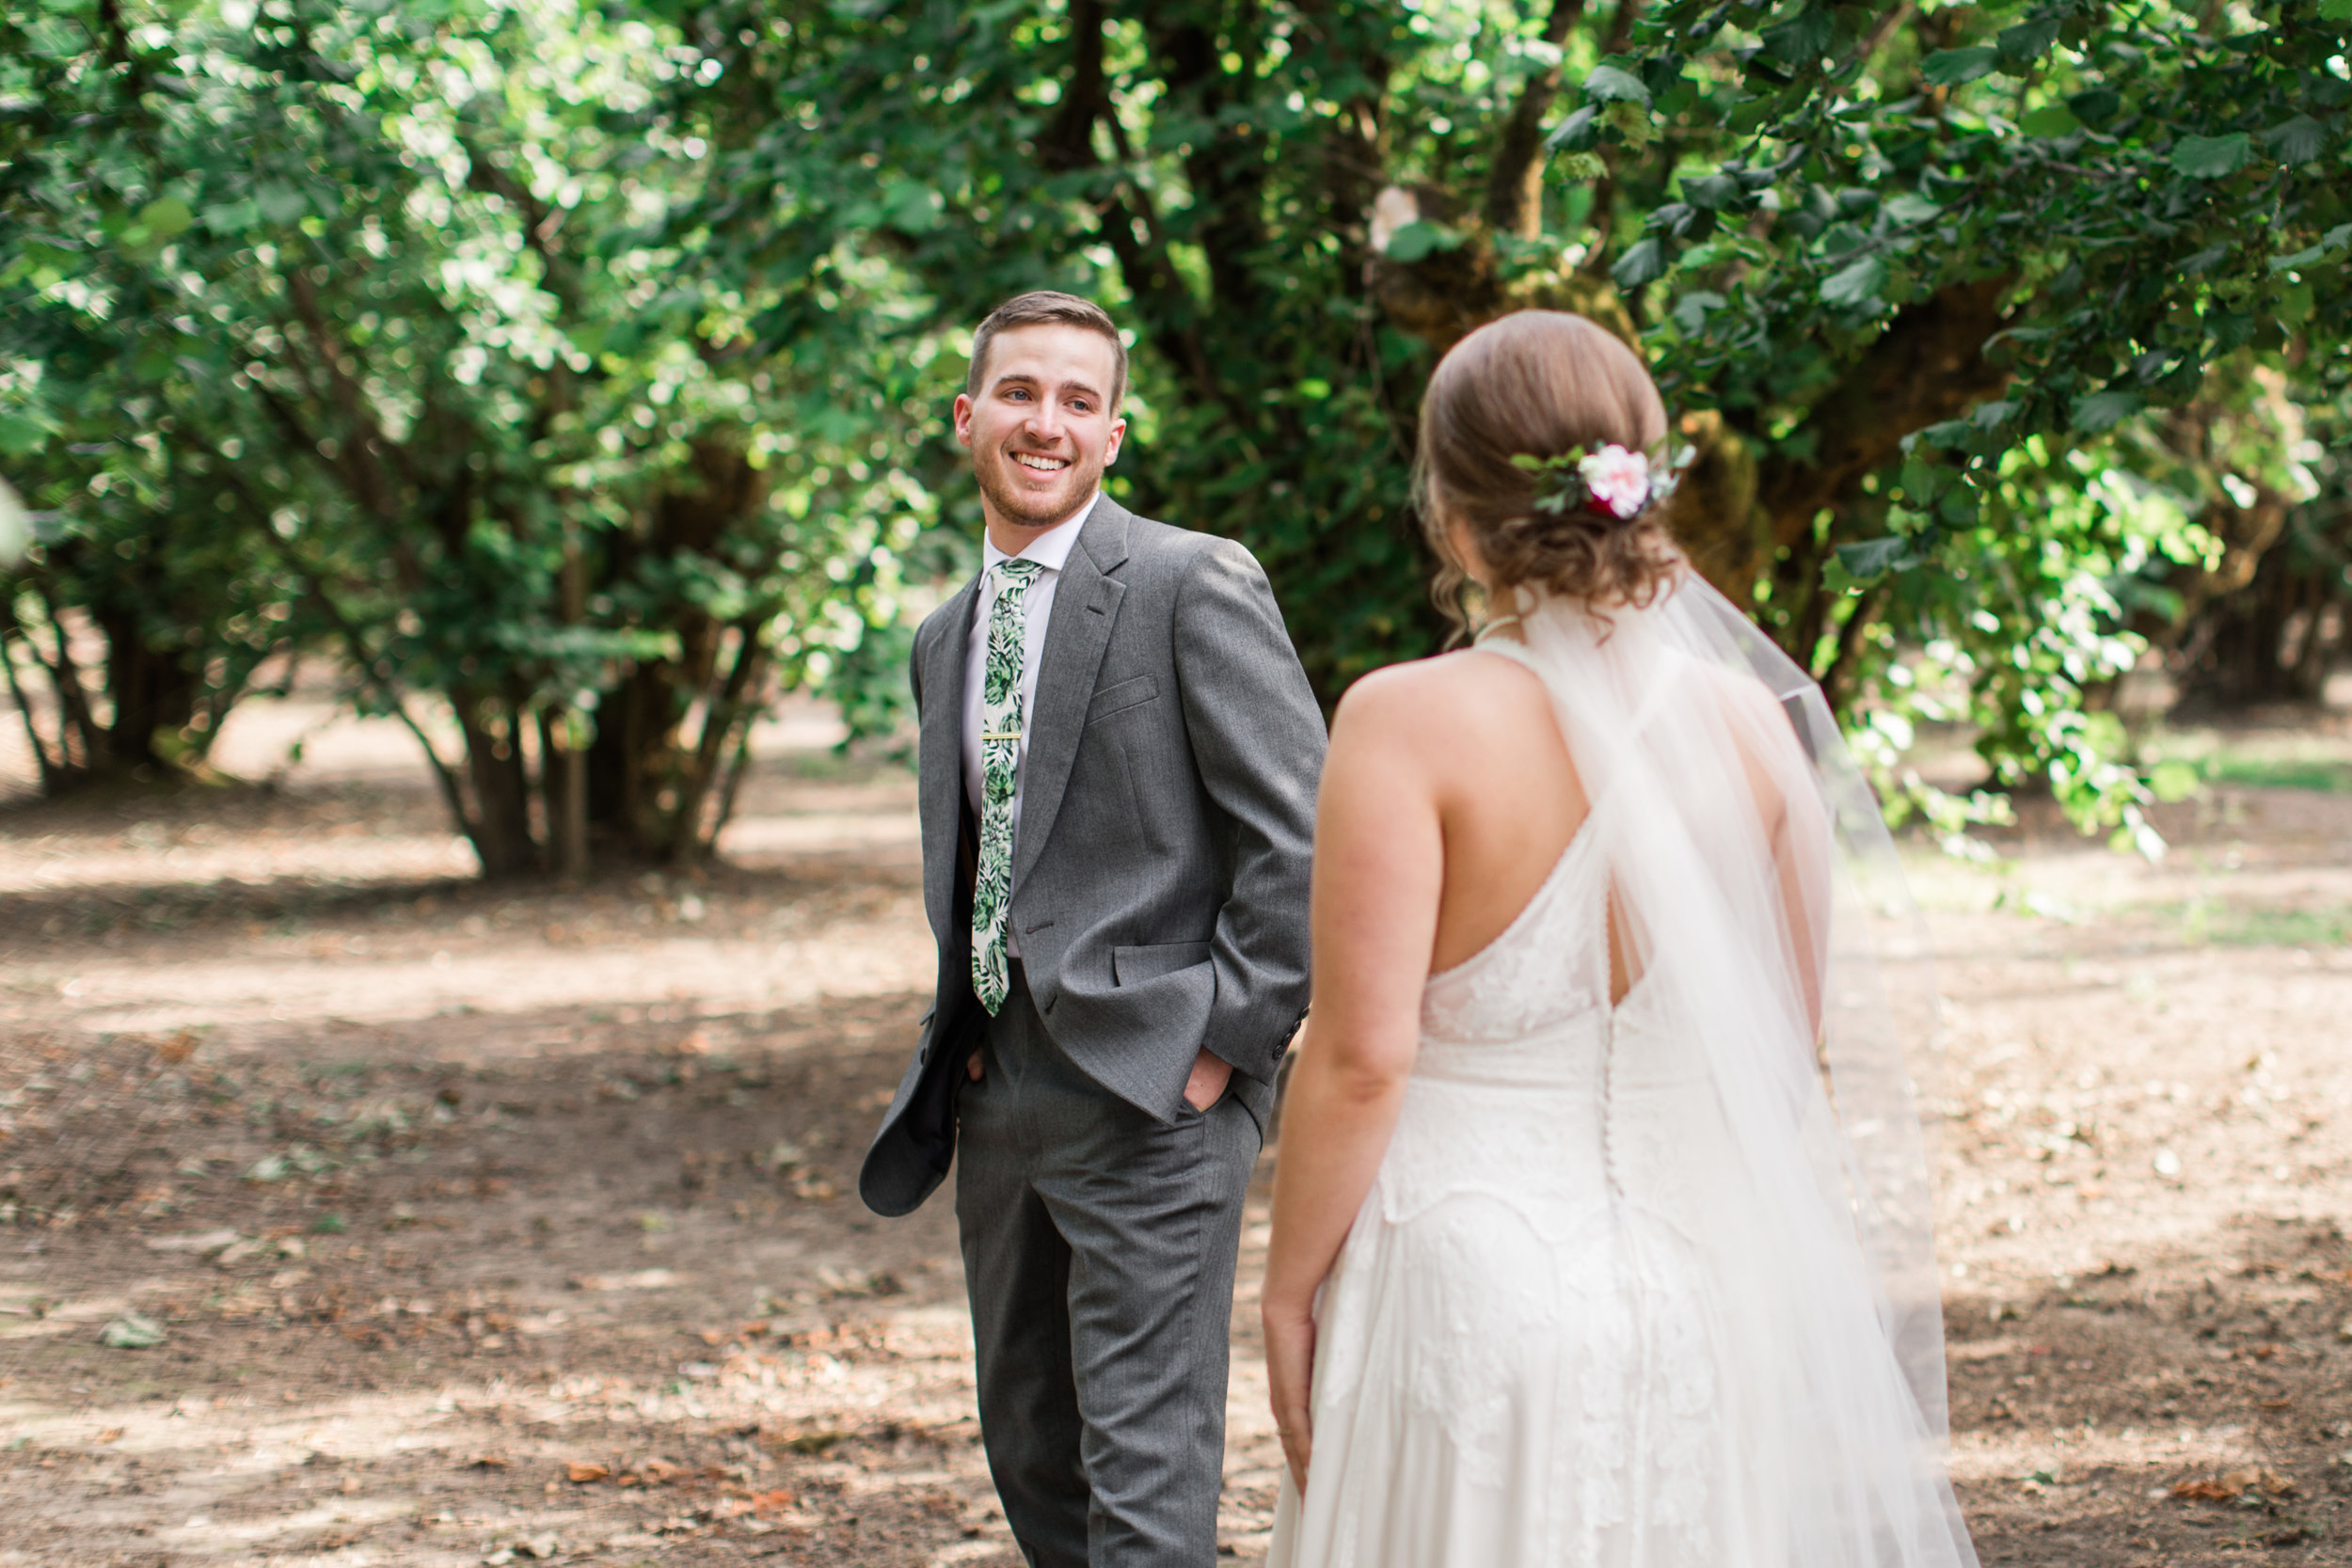 Komorebi-Photography-ByJessicaMcBroom-DialWedding-OregonWeddings-42.jpg